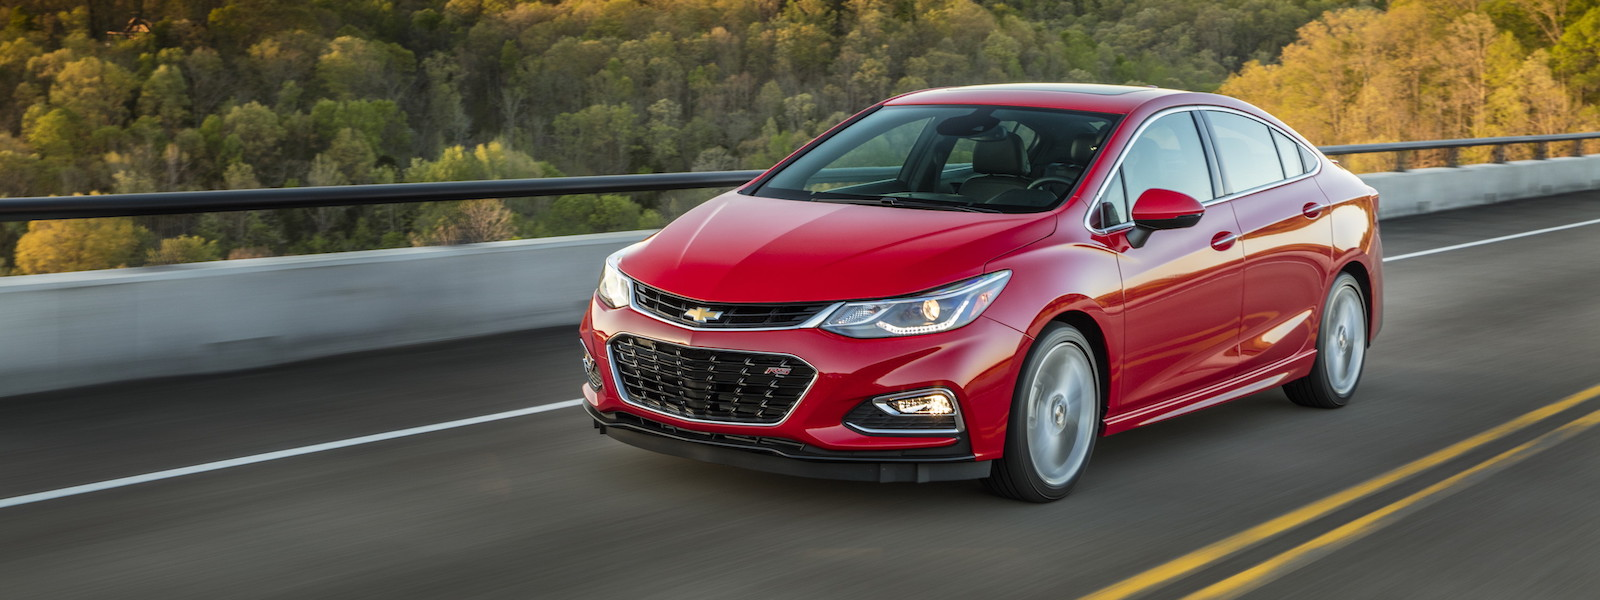 2016 Chevy Cruze Performance